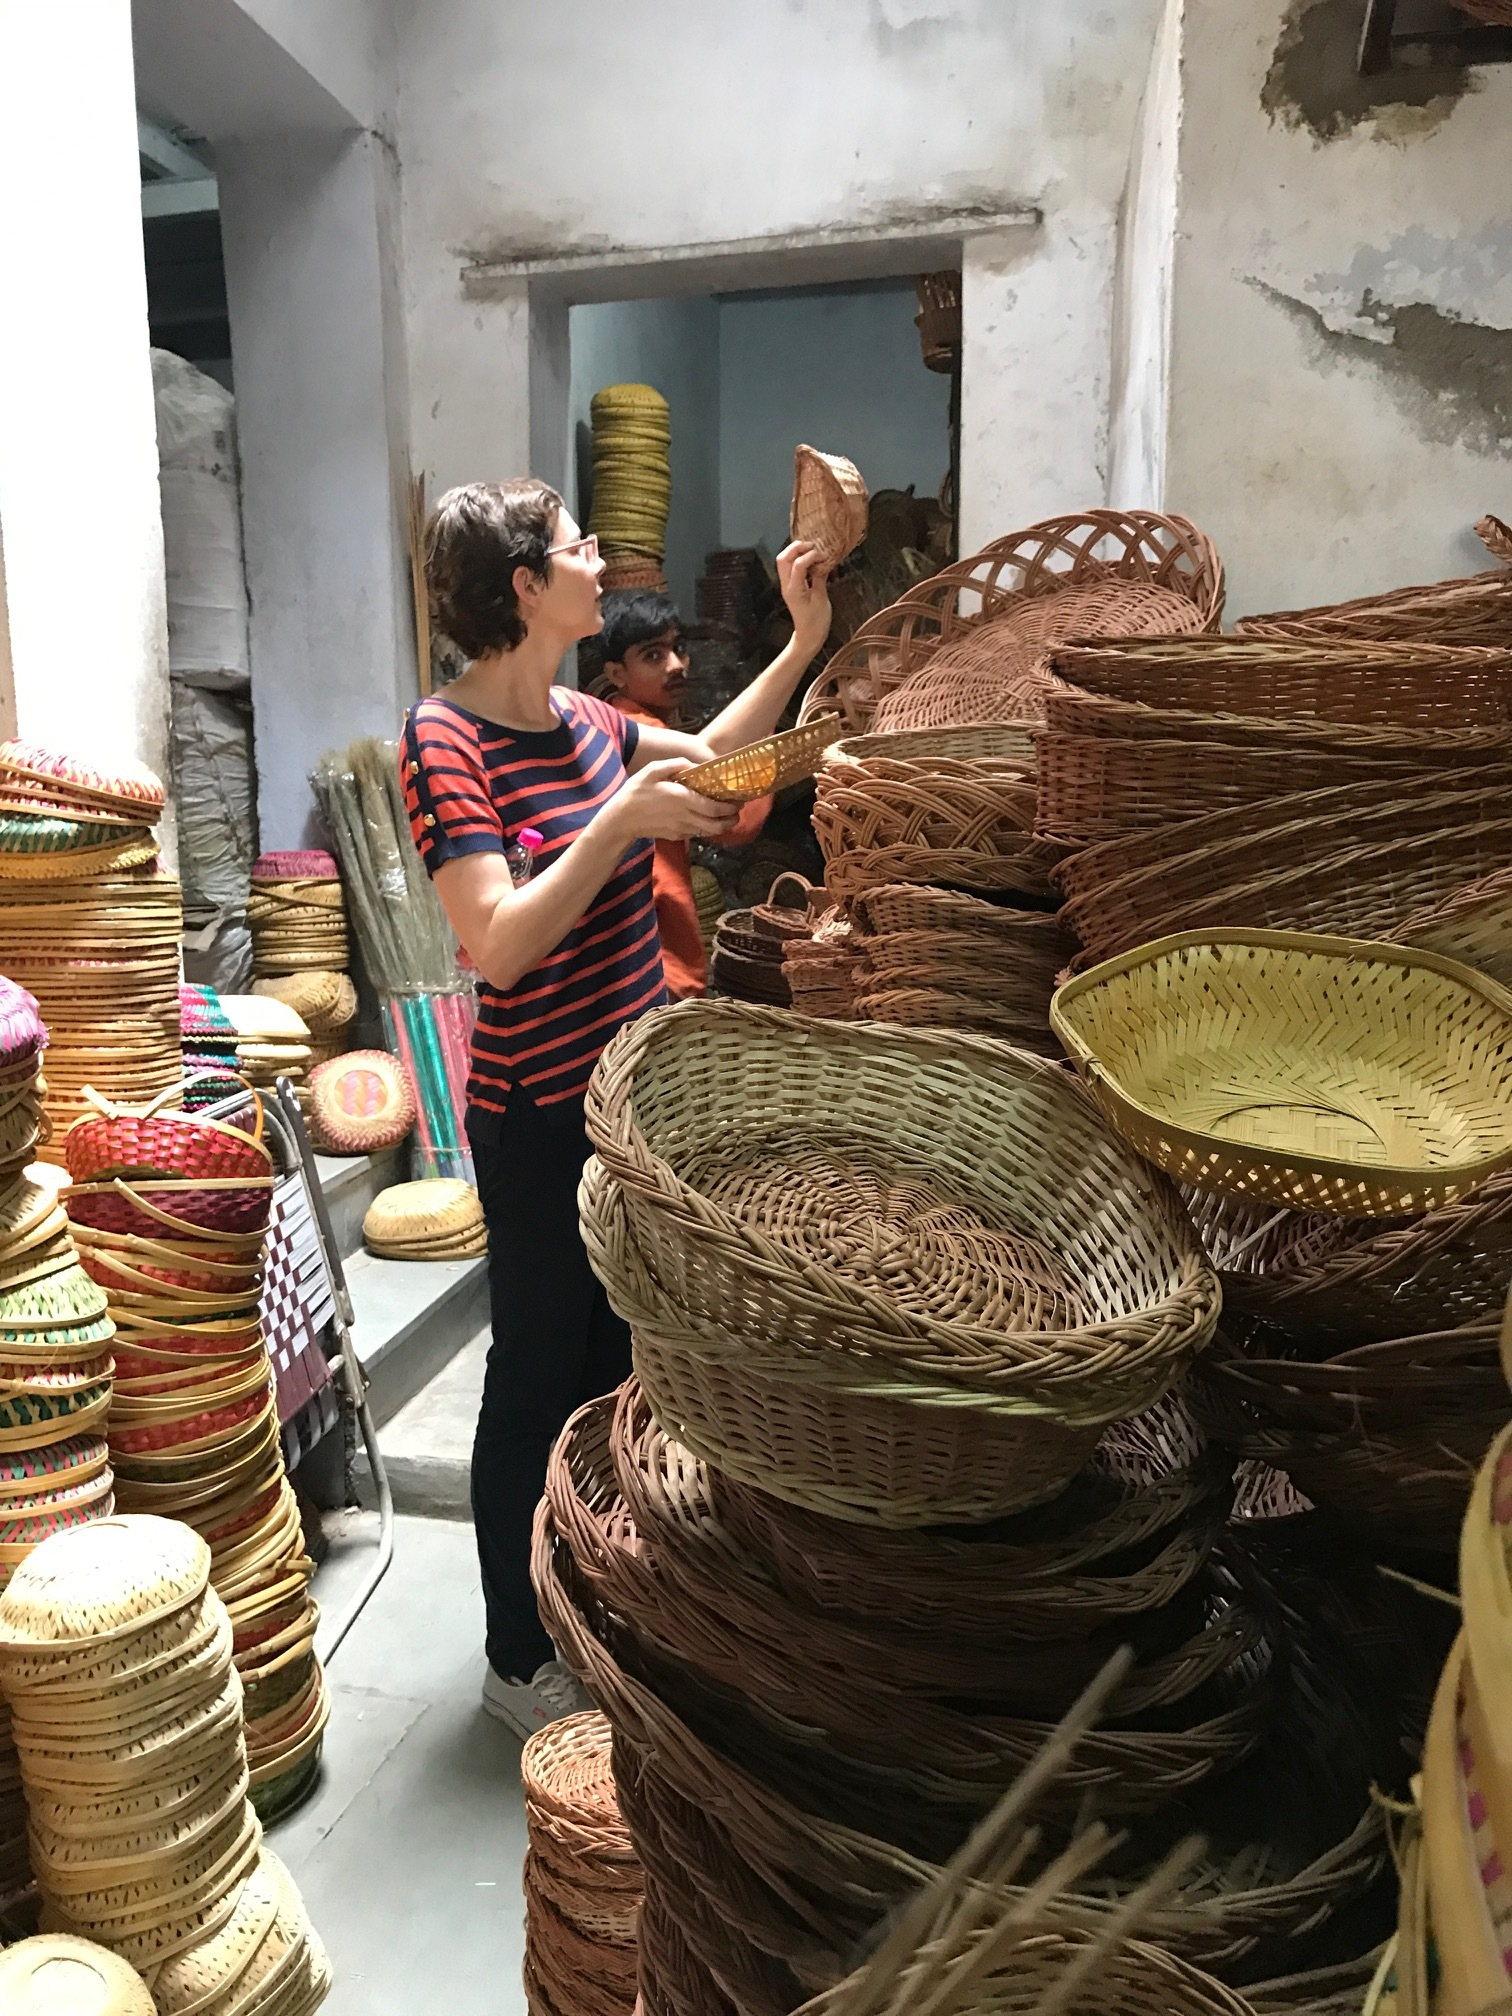 Bamboo baskets in Old Ahmedabad